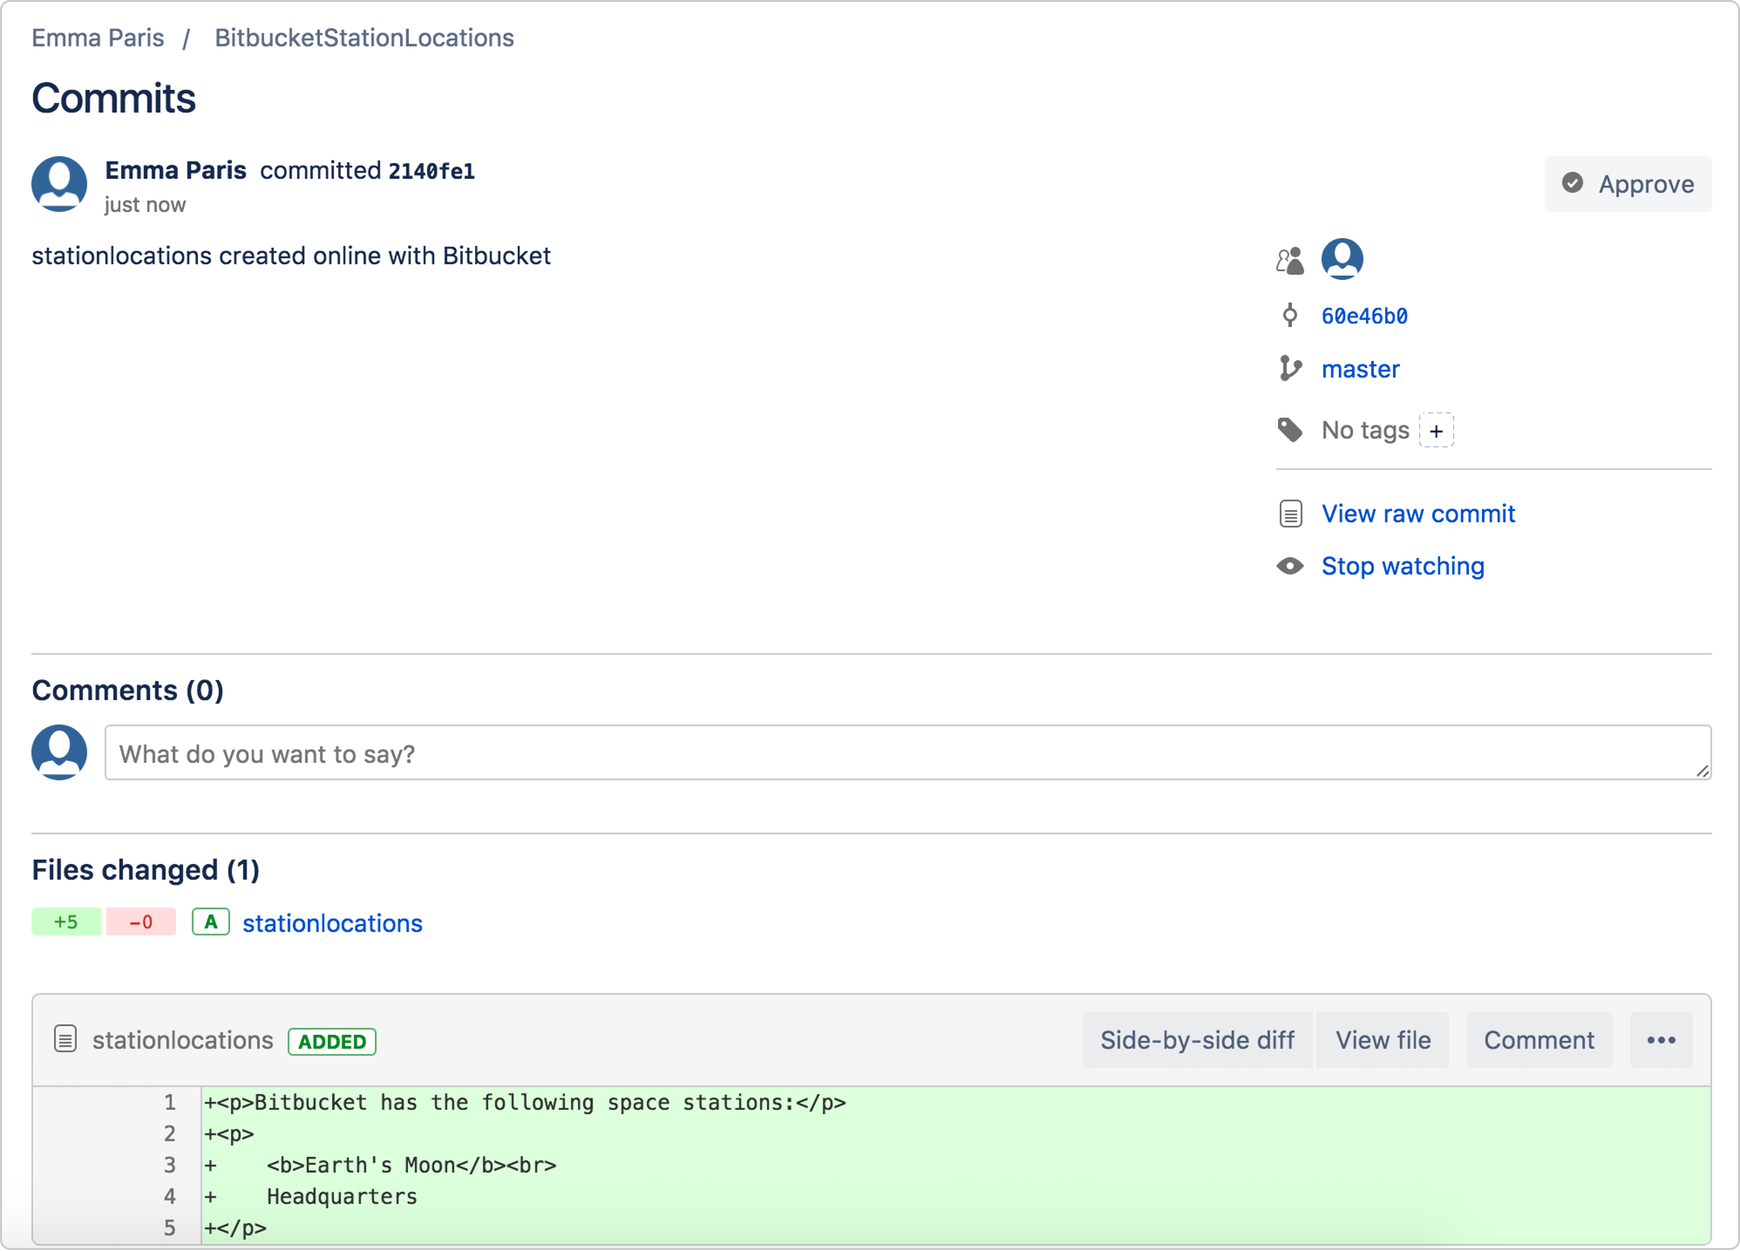 https://confluence.atlassian.com/bitbucket/files/304578655/750395825/2/1438196813736/new_file_committed_git.png